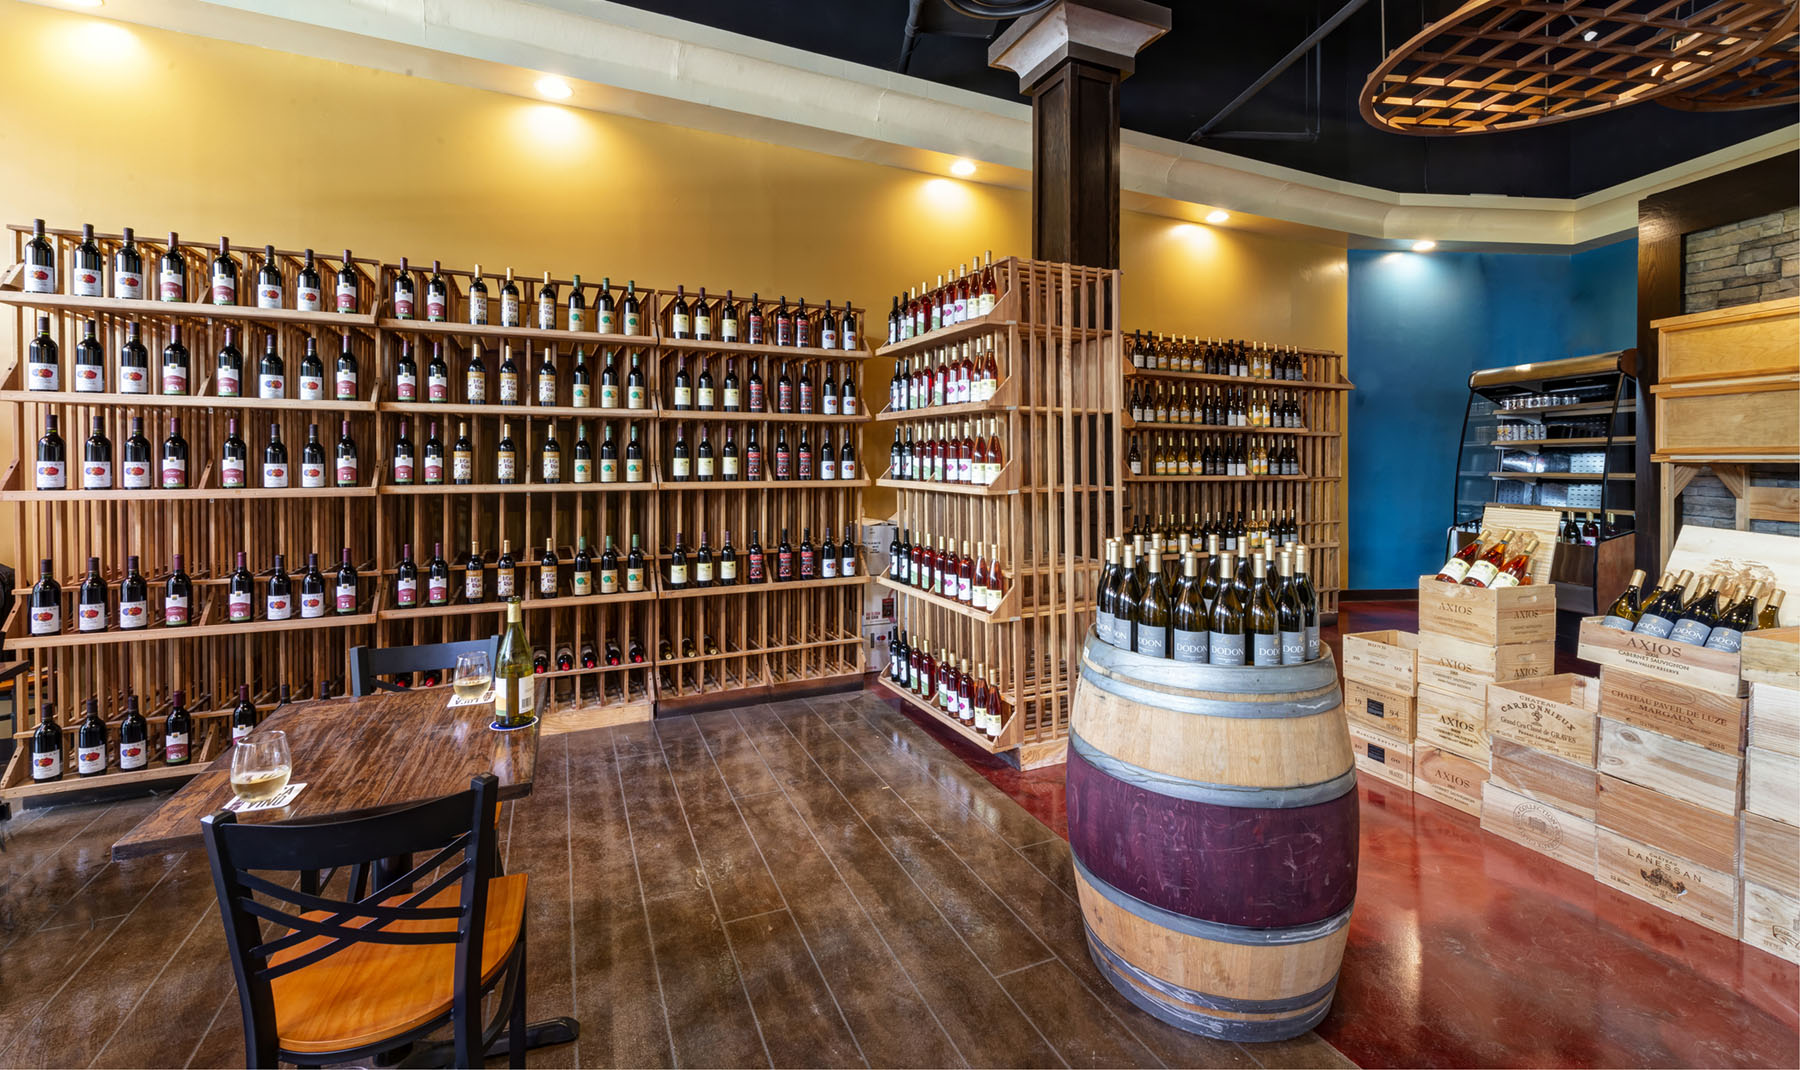 Downtown Silver Spring's Beloved Wine Bar Makes a Comeback This Weekend